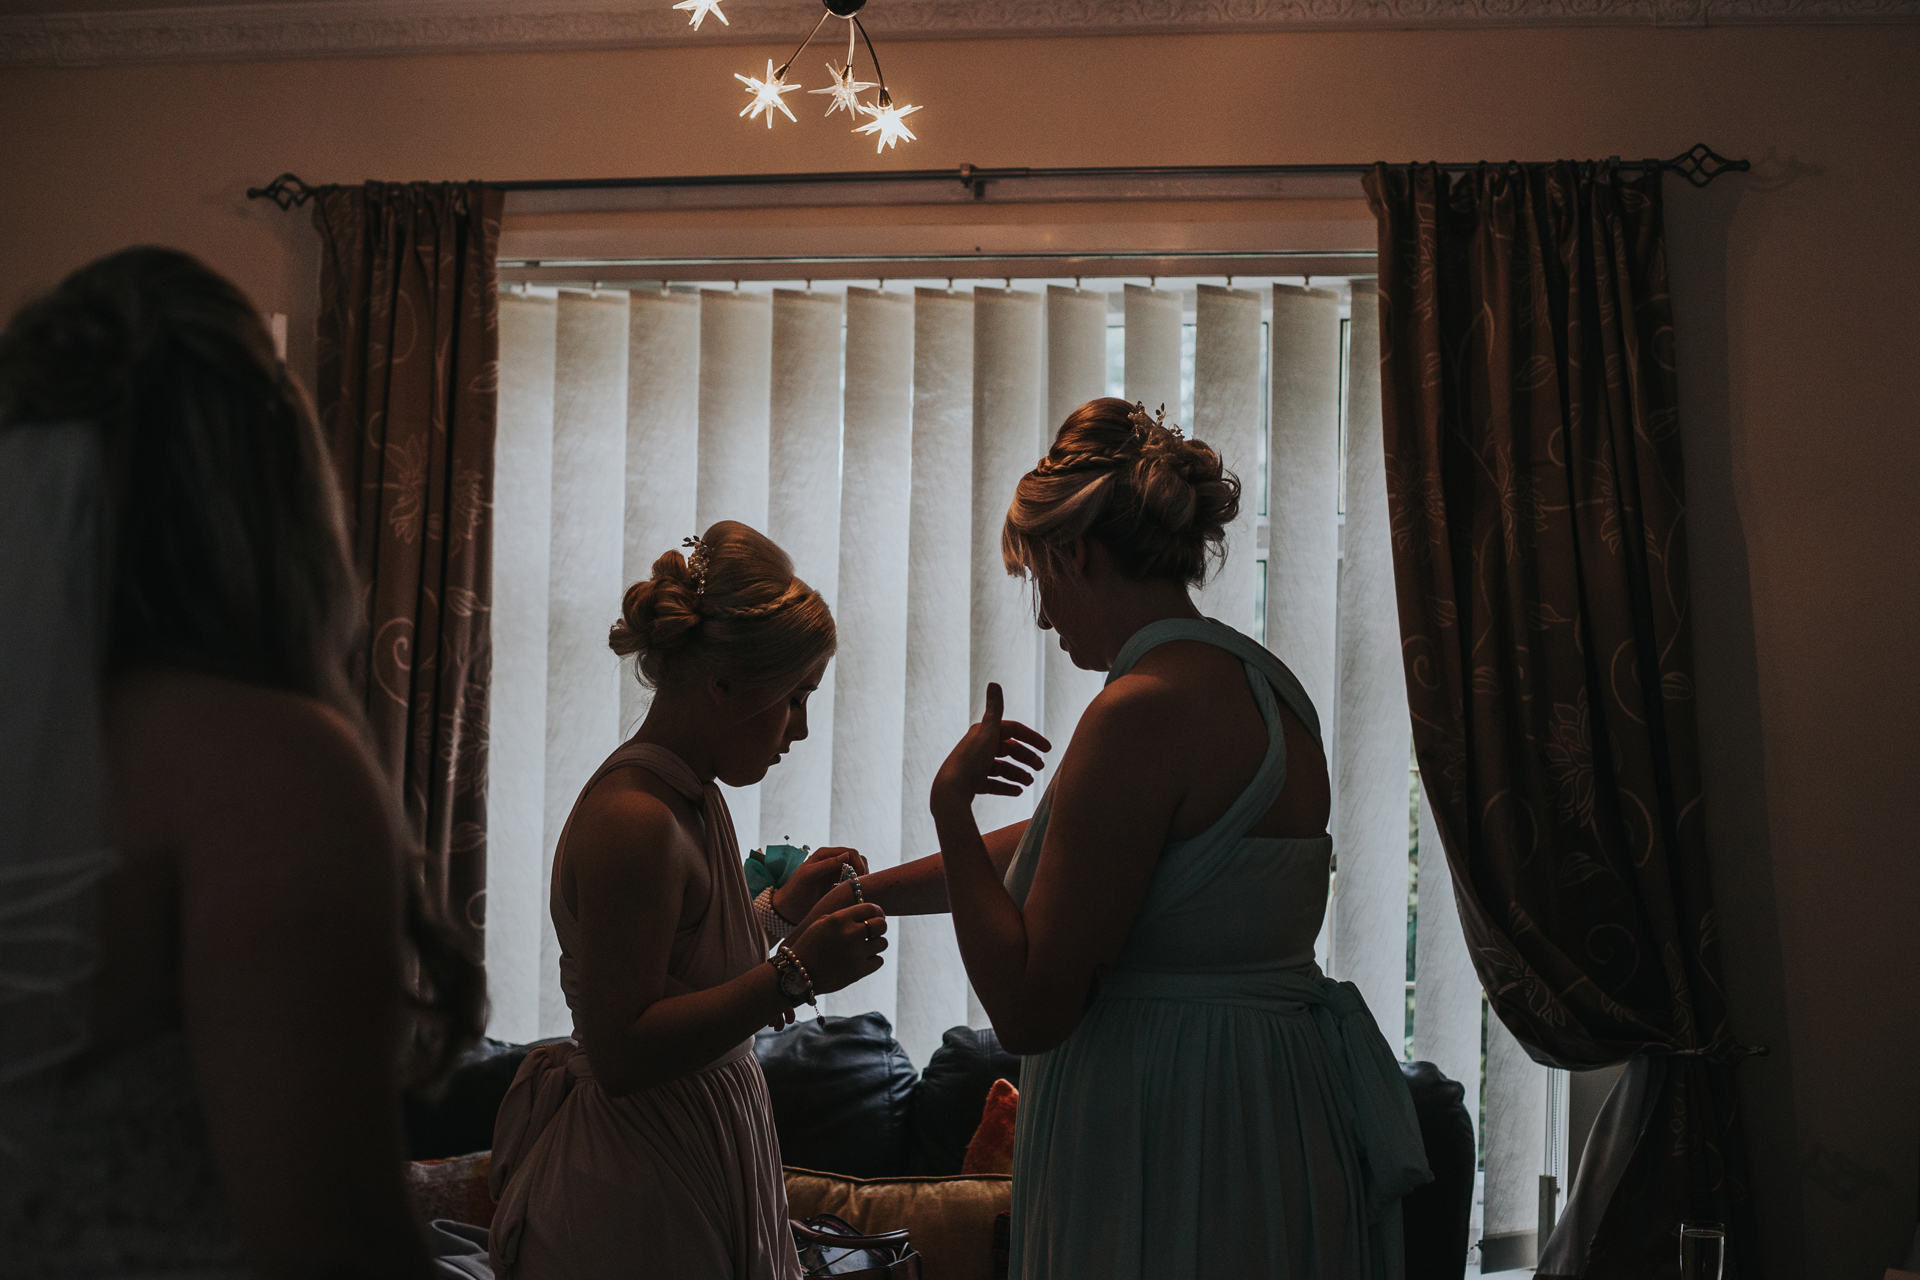 Silhouette of bridesmaids getting ready in front on the window.